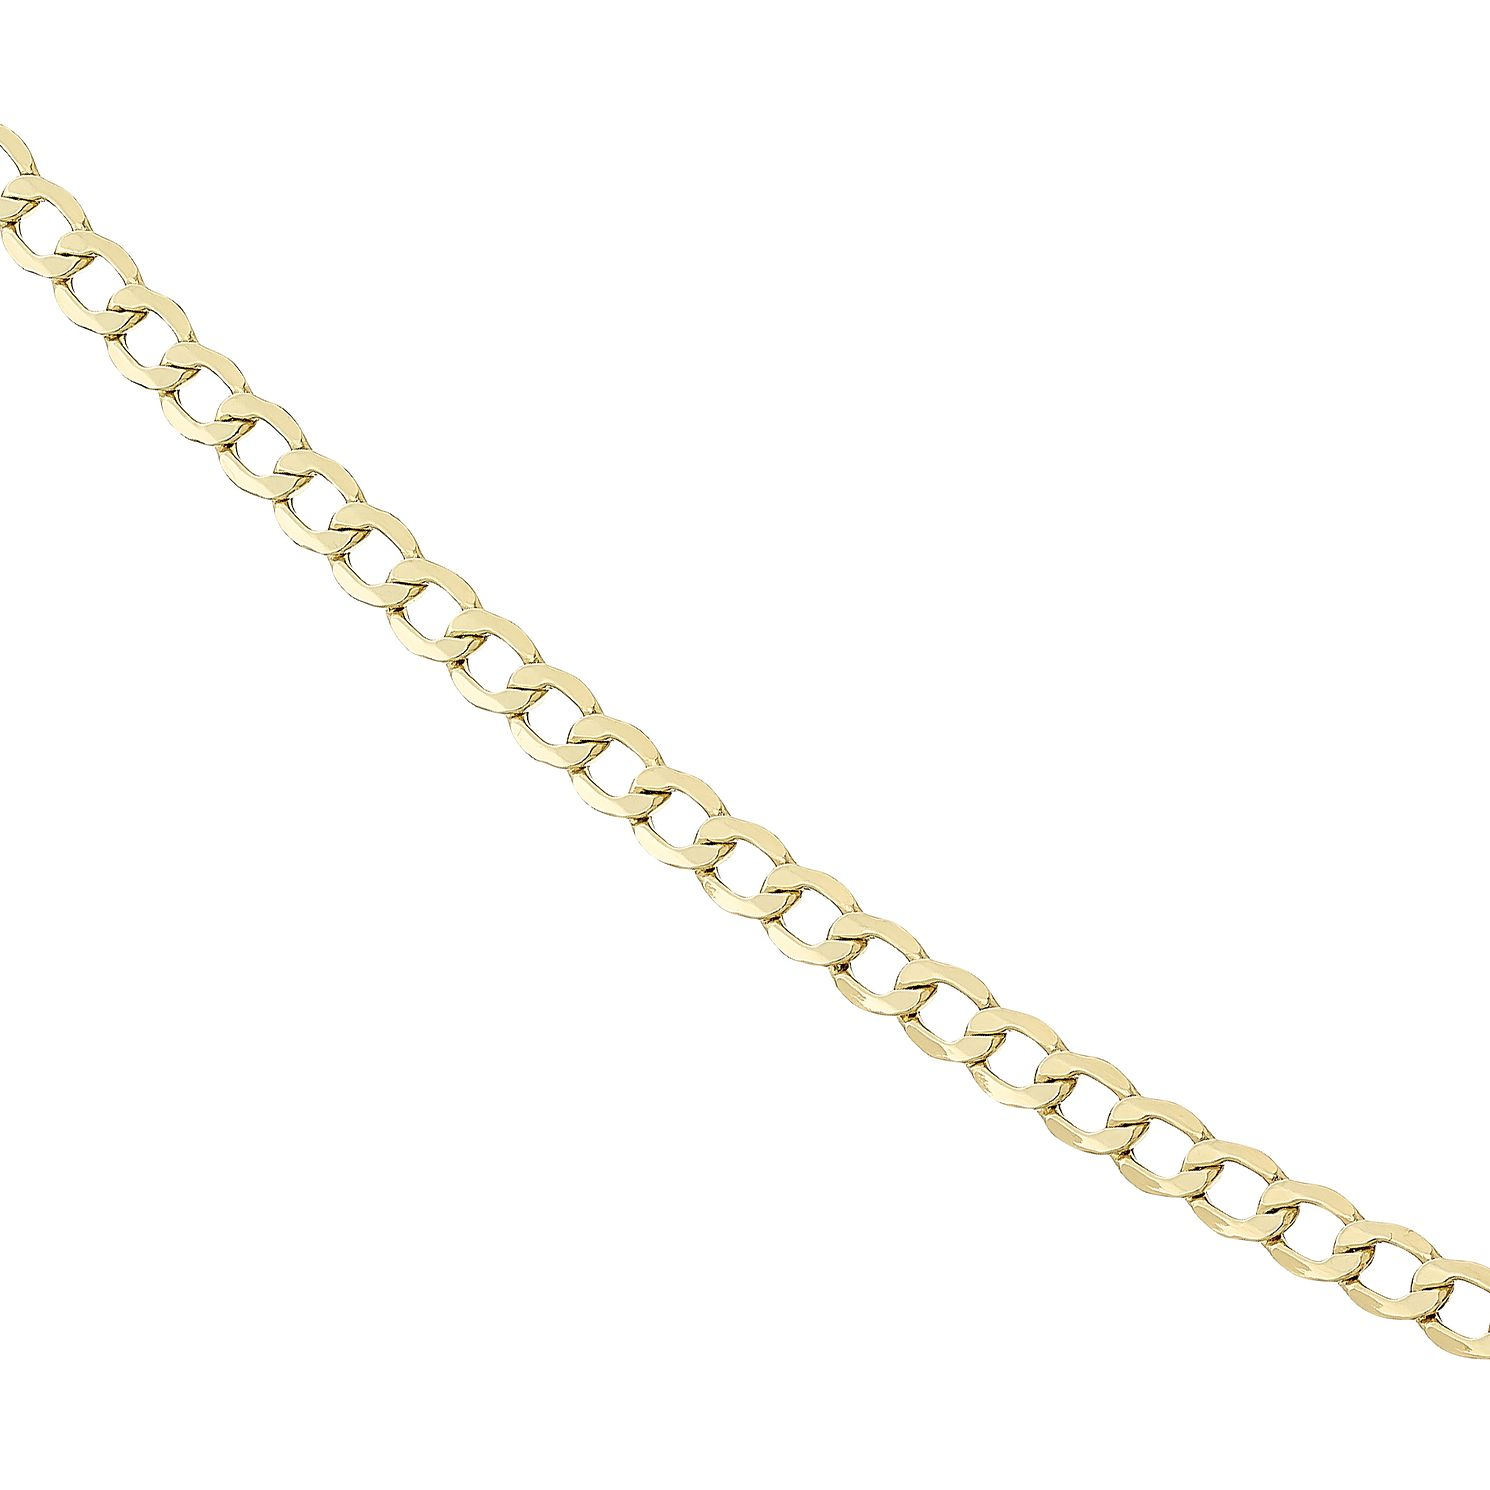 chain for chains bijoux wholesale men necklace product jewelry queenweddingdressing plated thick big chaine heavy gold by hiphop online cheap homme y chunky